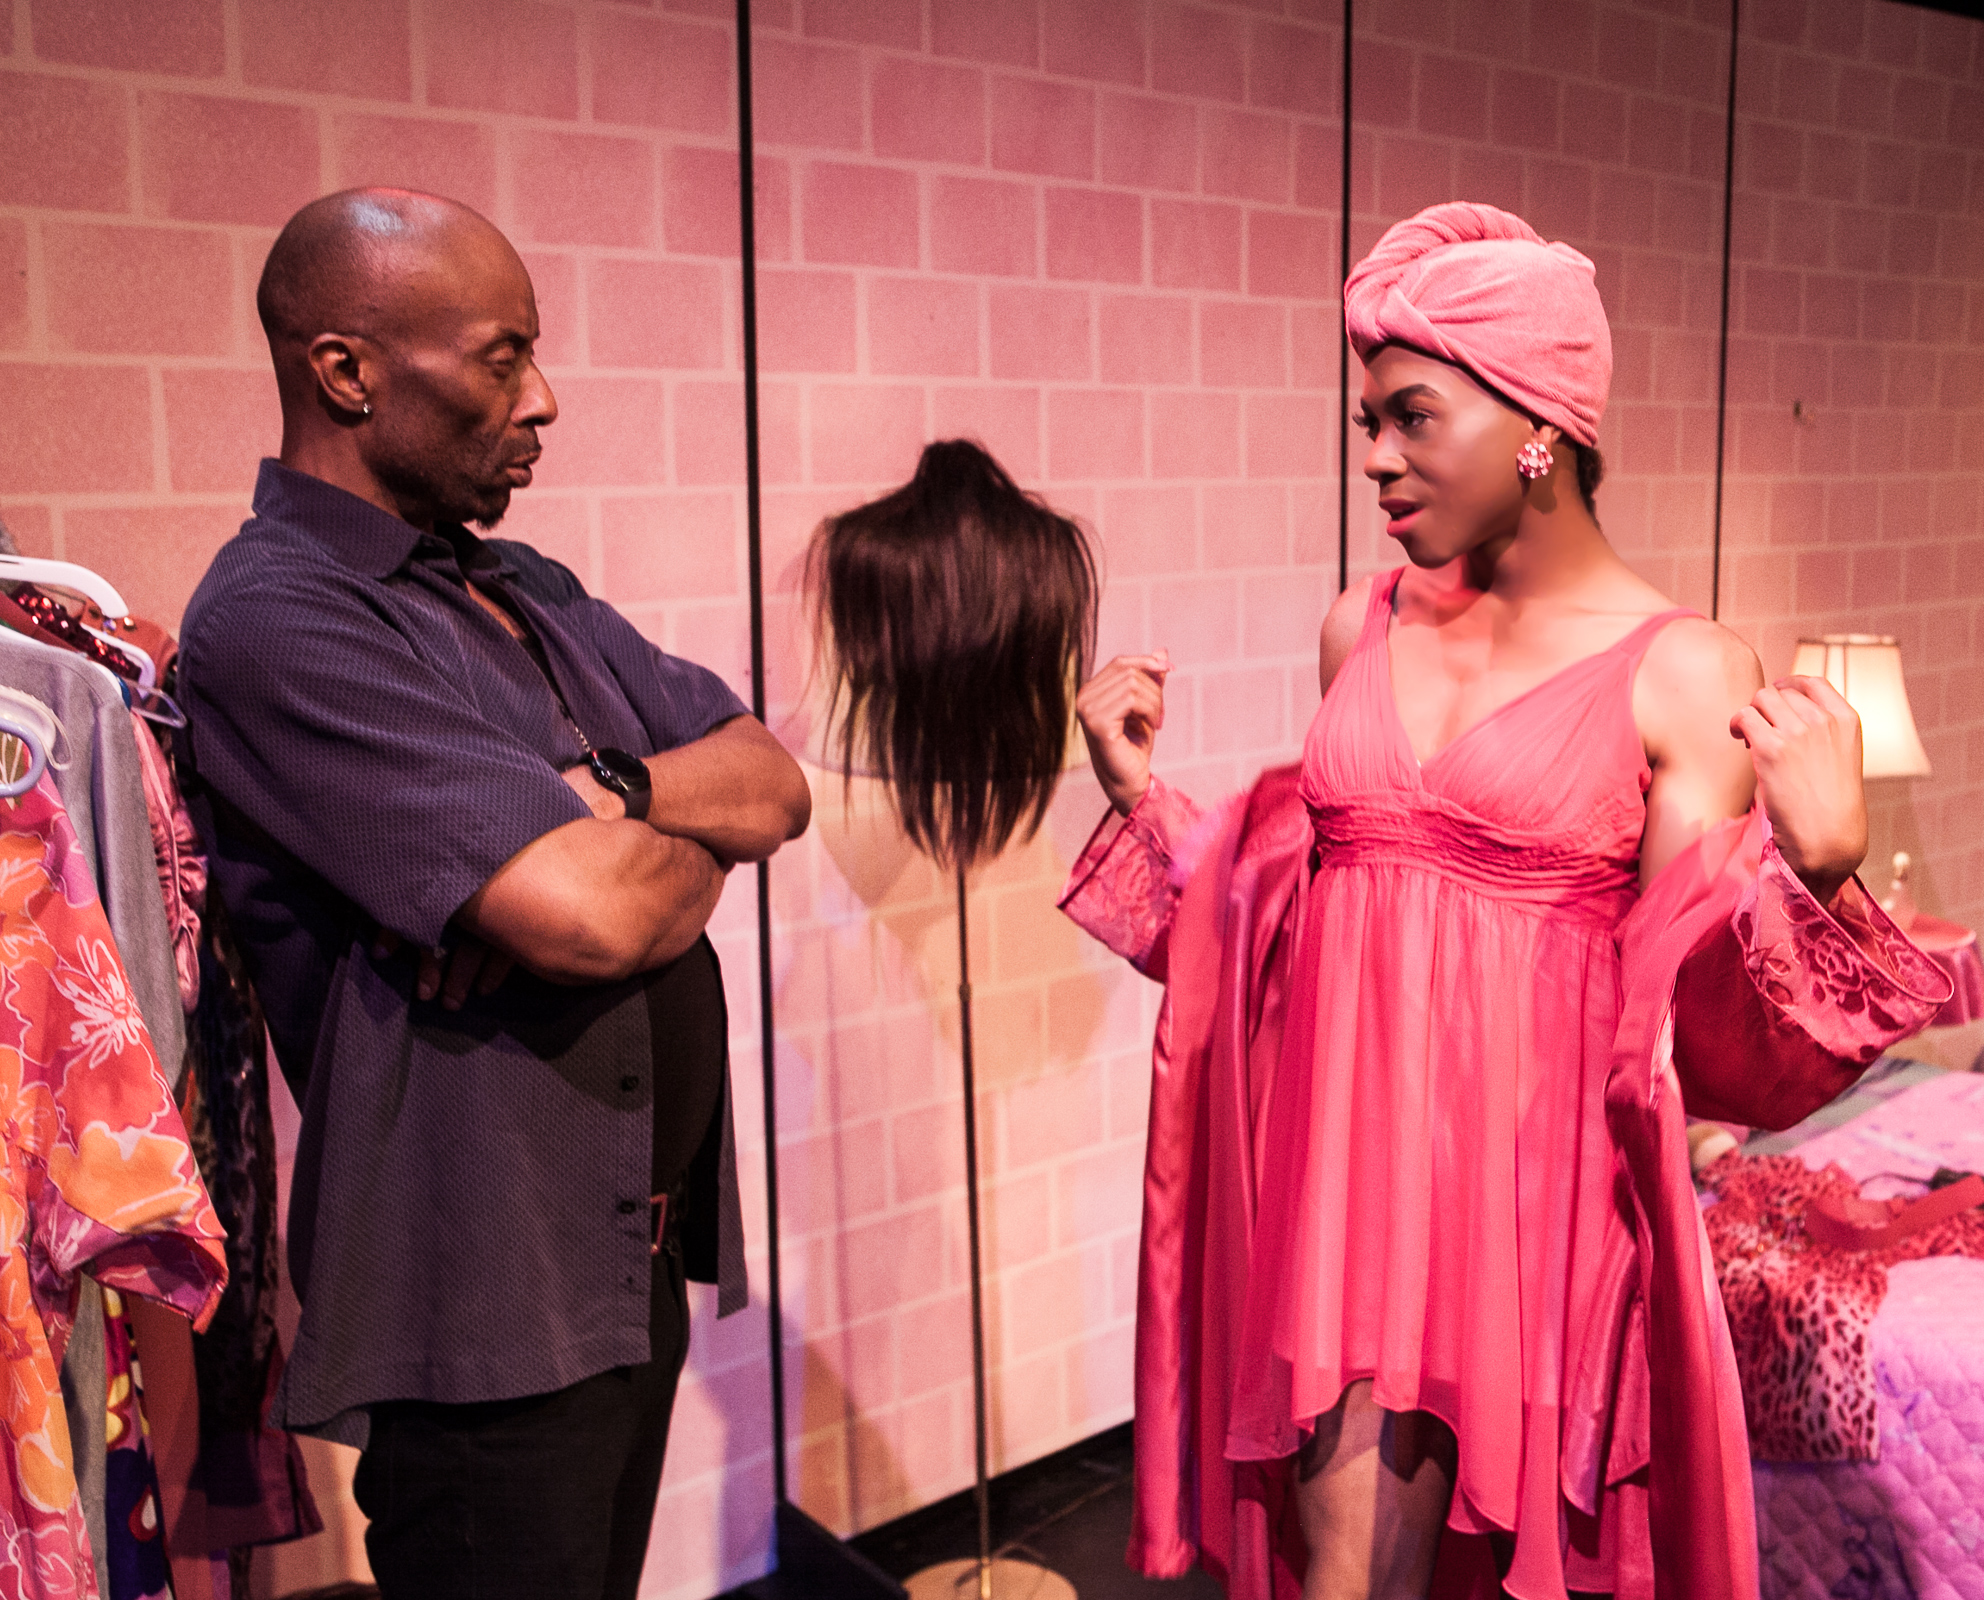 Pictured left to right: R. Shawntez Jackson as Ace and Charles Peoples III as Pink in THE LEGEND OF PINK by Kheven LaGrone, directed by AeJay Mitchell; A Theatre Rhinoceros Production at The Gateway Theatre (formerly The Eureka Theatre.) Photo by David Wilson,